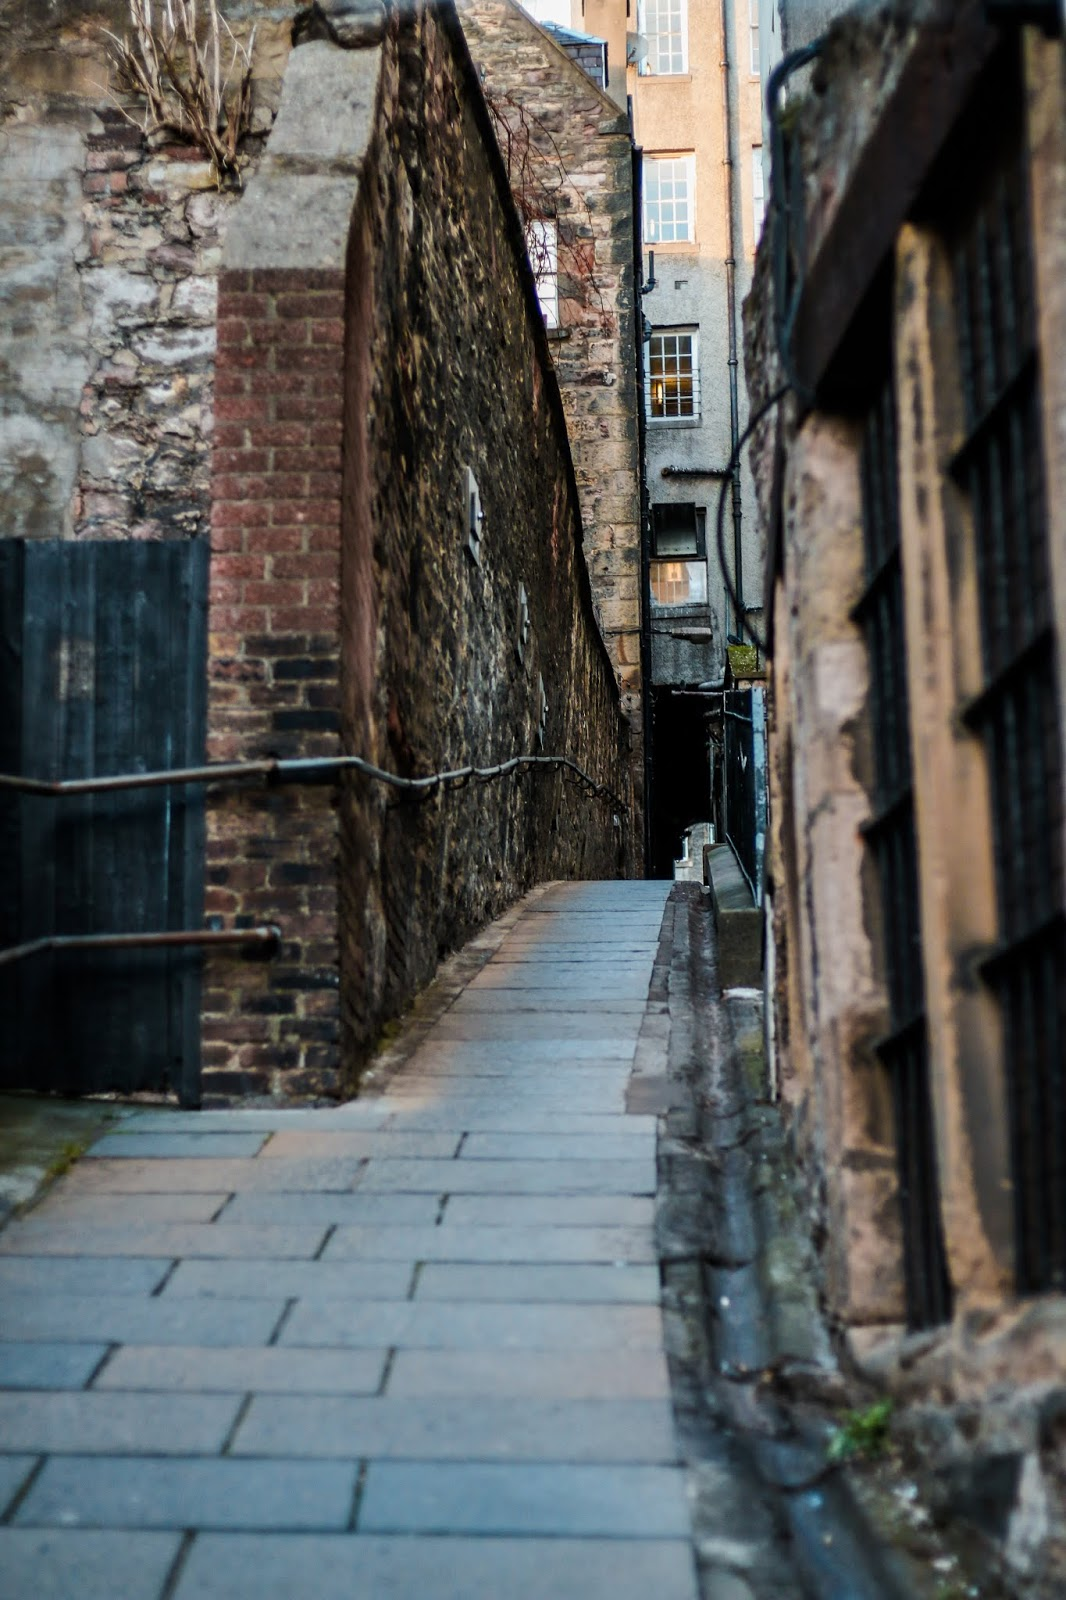 A photo of an Alley way in Edunburgh